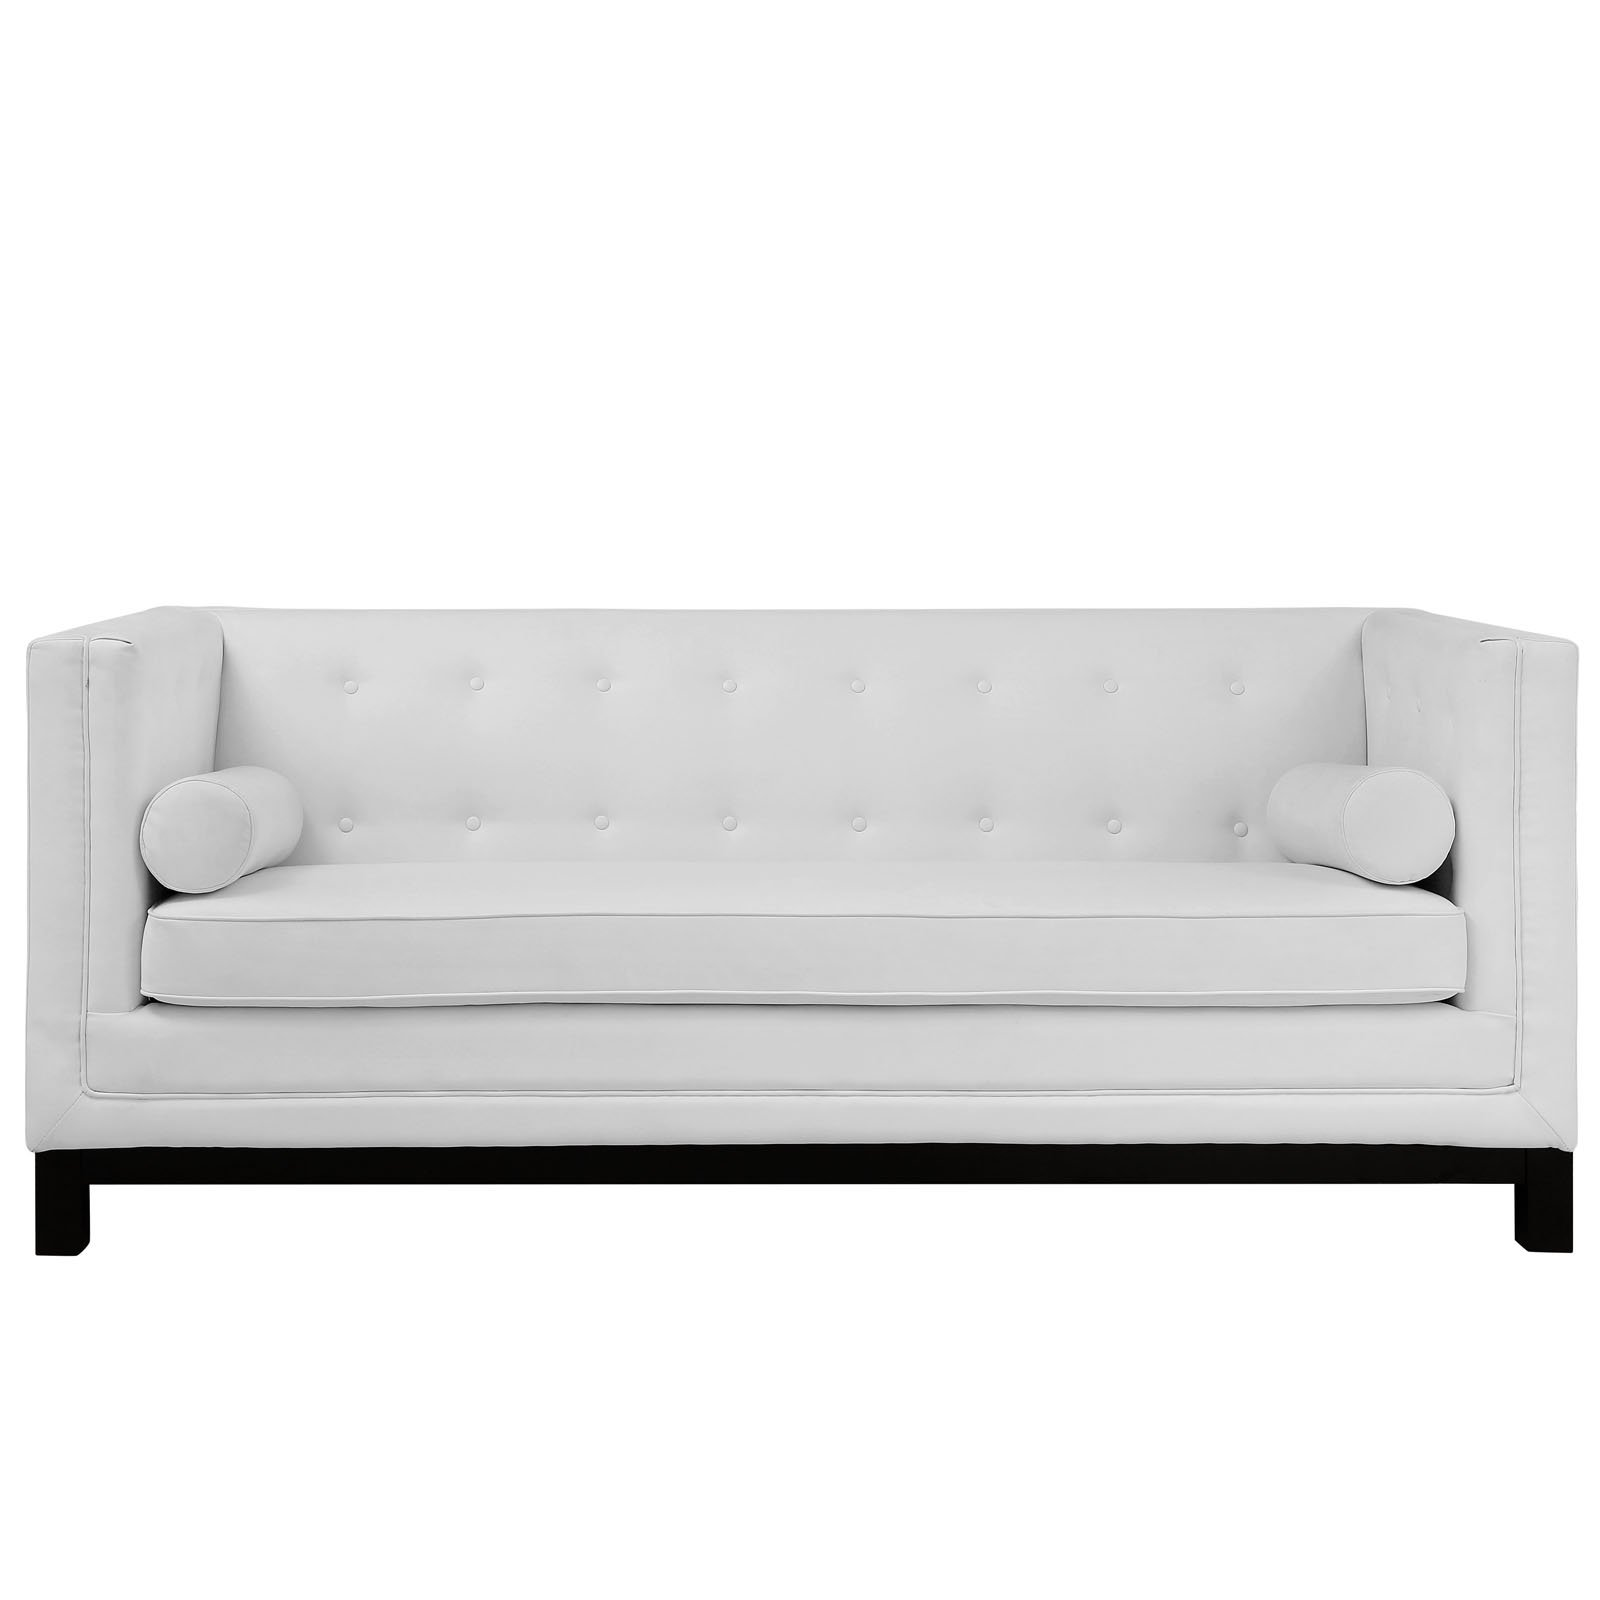 Modway Imperial Club Style Tuxedo Modern Sofa With [Bonded] Leather Upholstery And Two Bolster Pillows In White by Modway